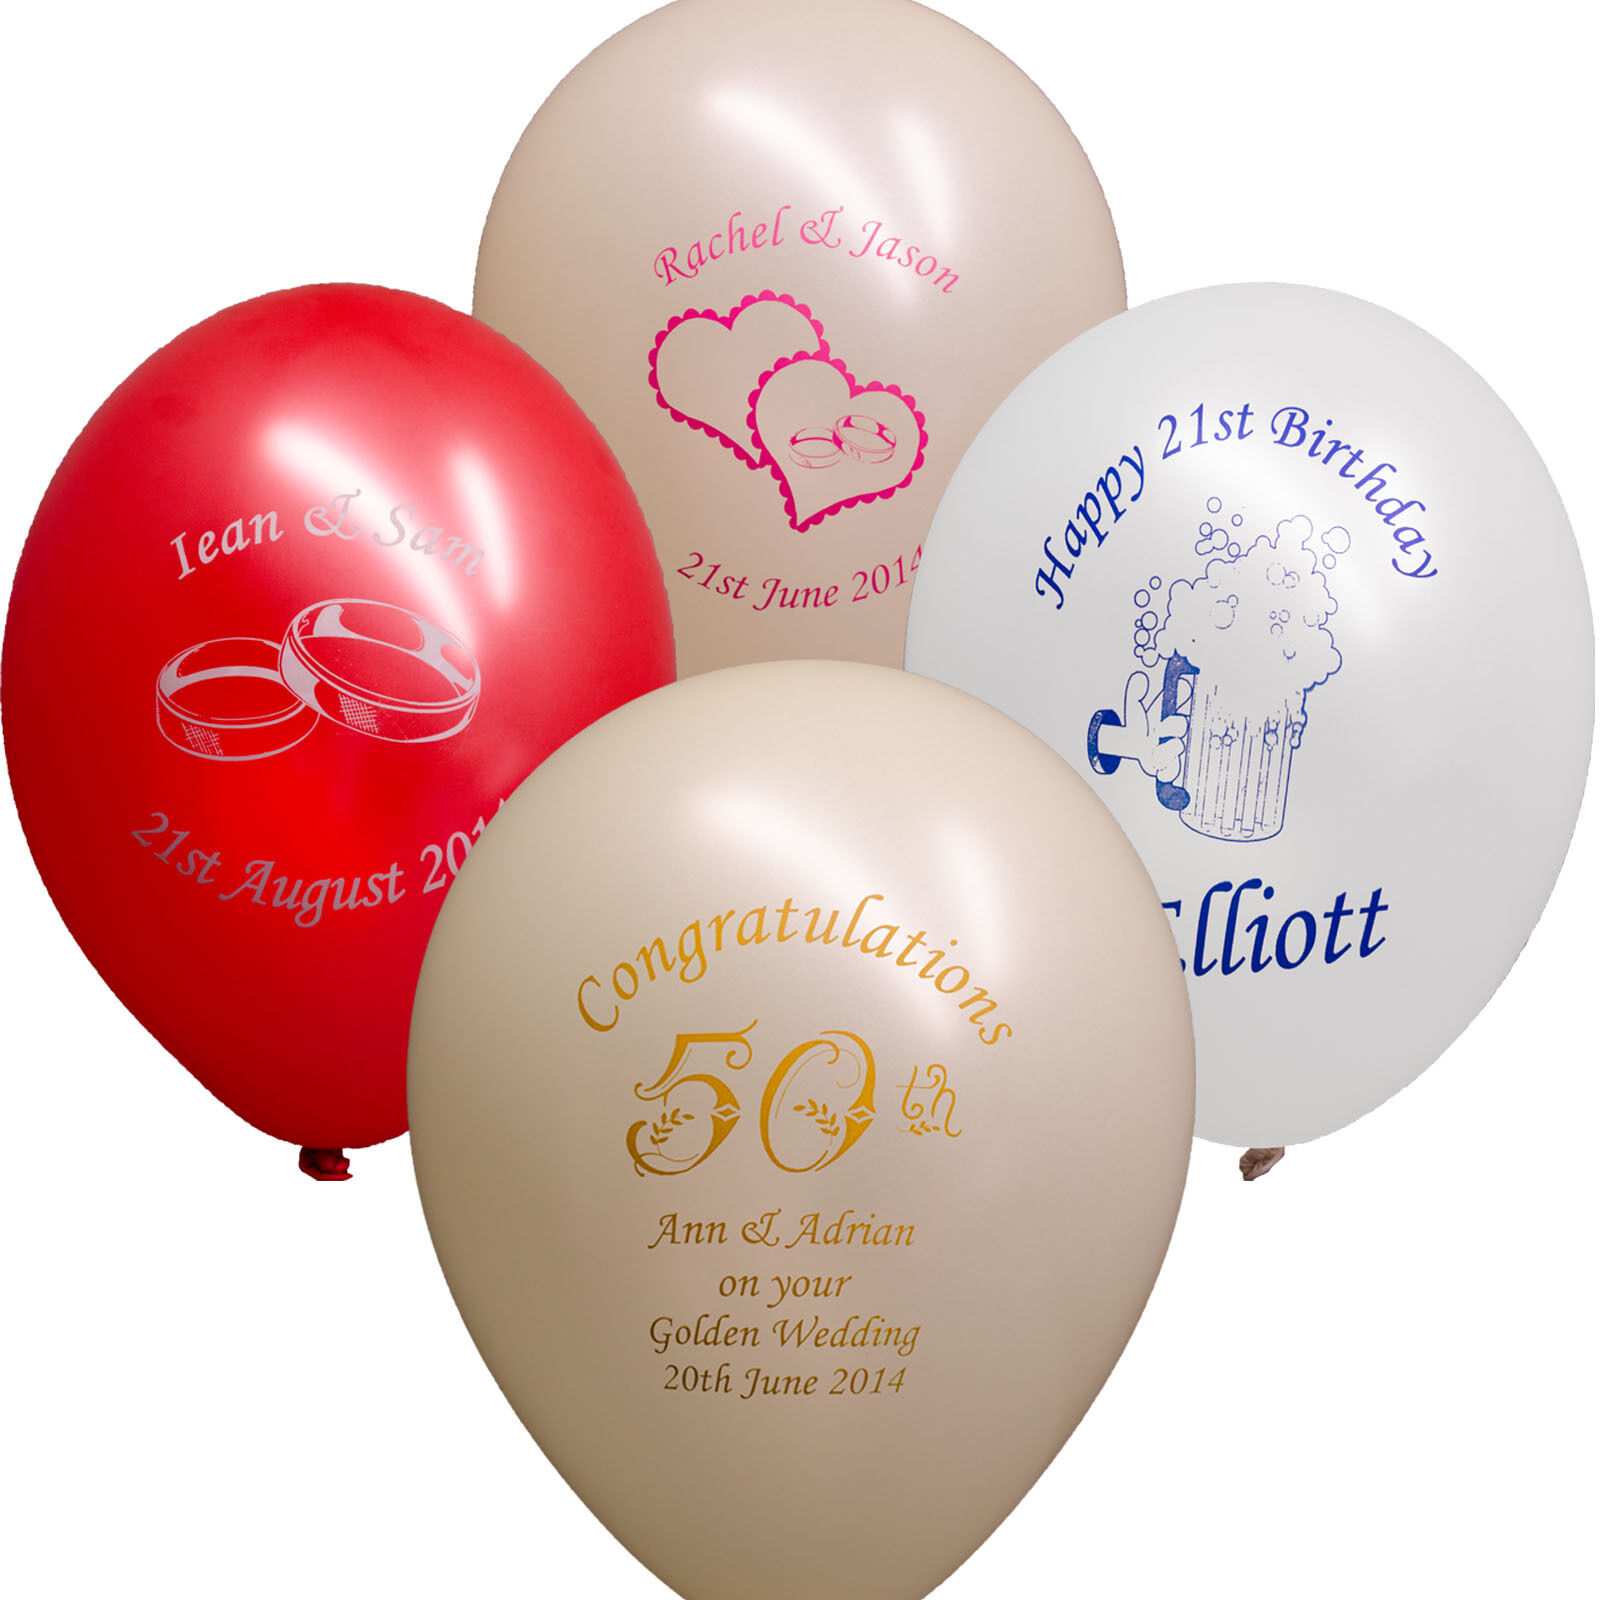 100 Wedding Birthday Anniversary Personalised Printed Party Balloons PS